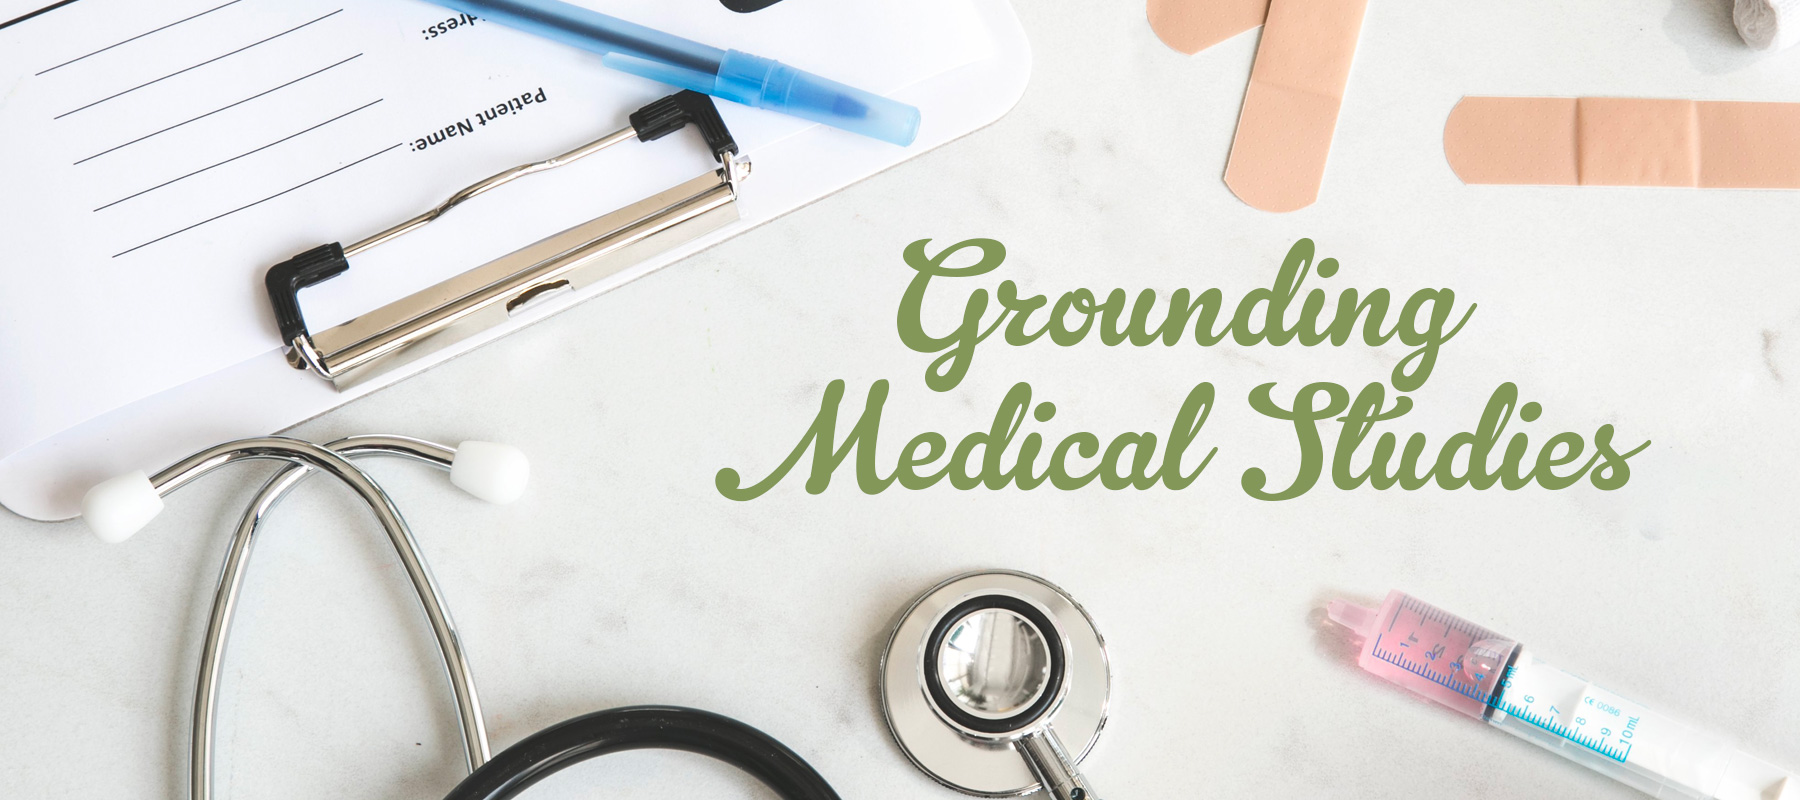 Grounding Medical Studies